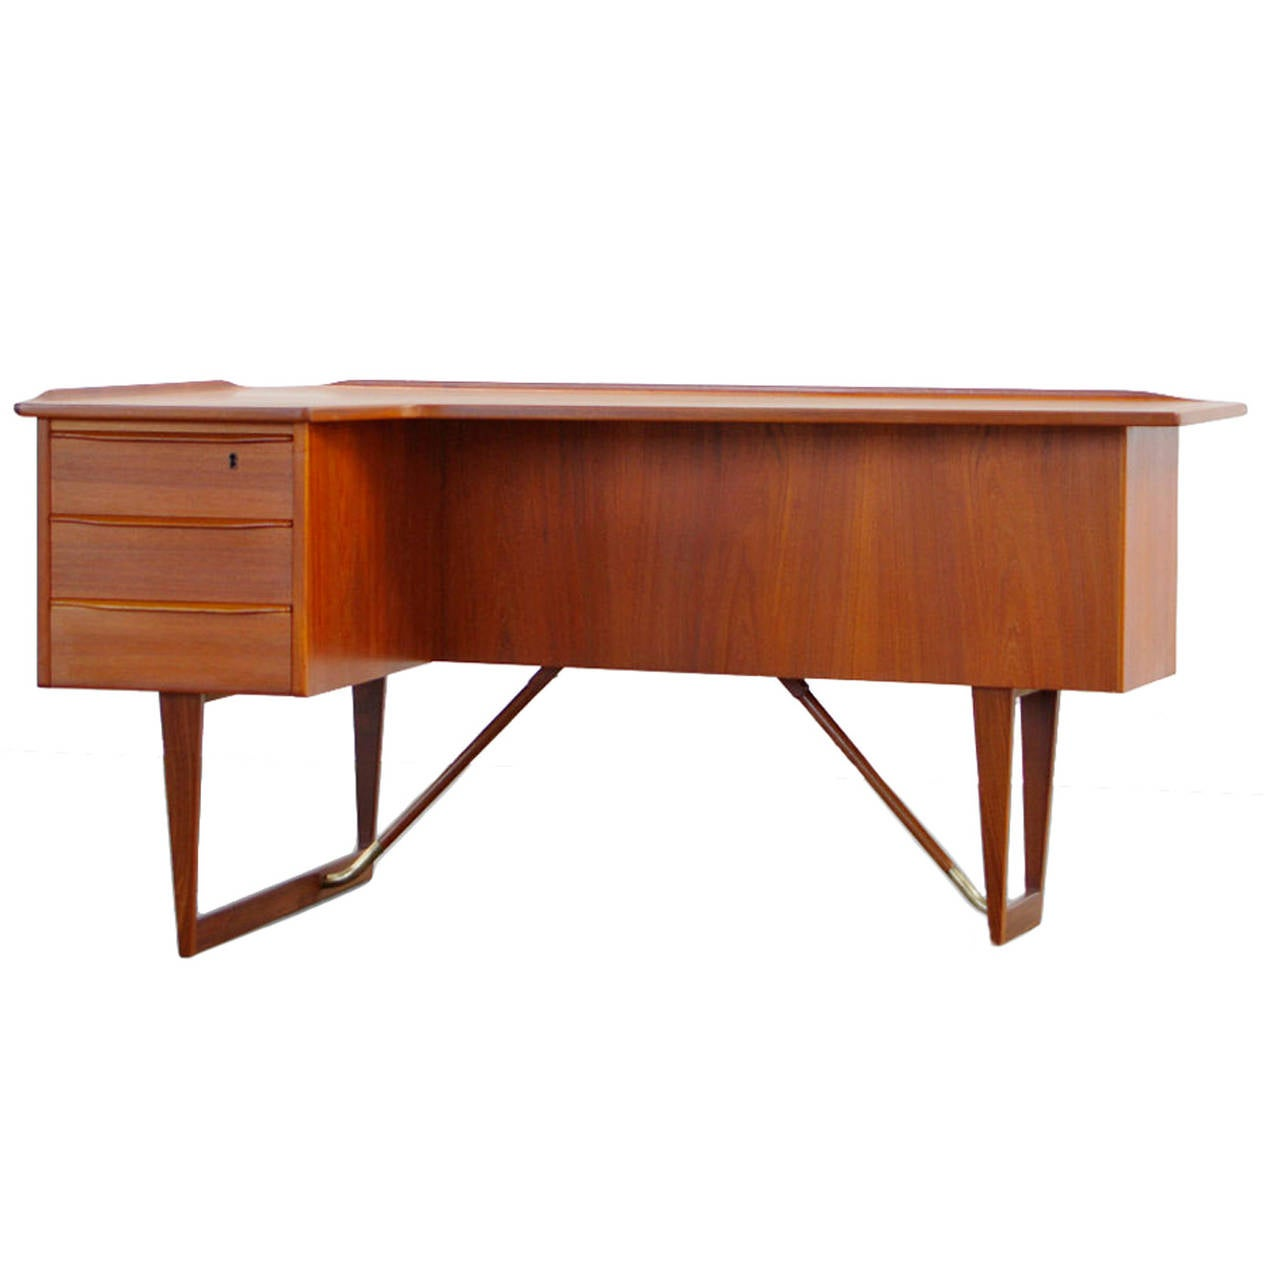 teak desk by peter lovig nielsen boomerang danish modern. Black Bedroom Furniture Sets. Home Design Ideas